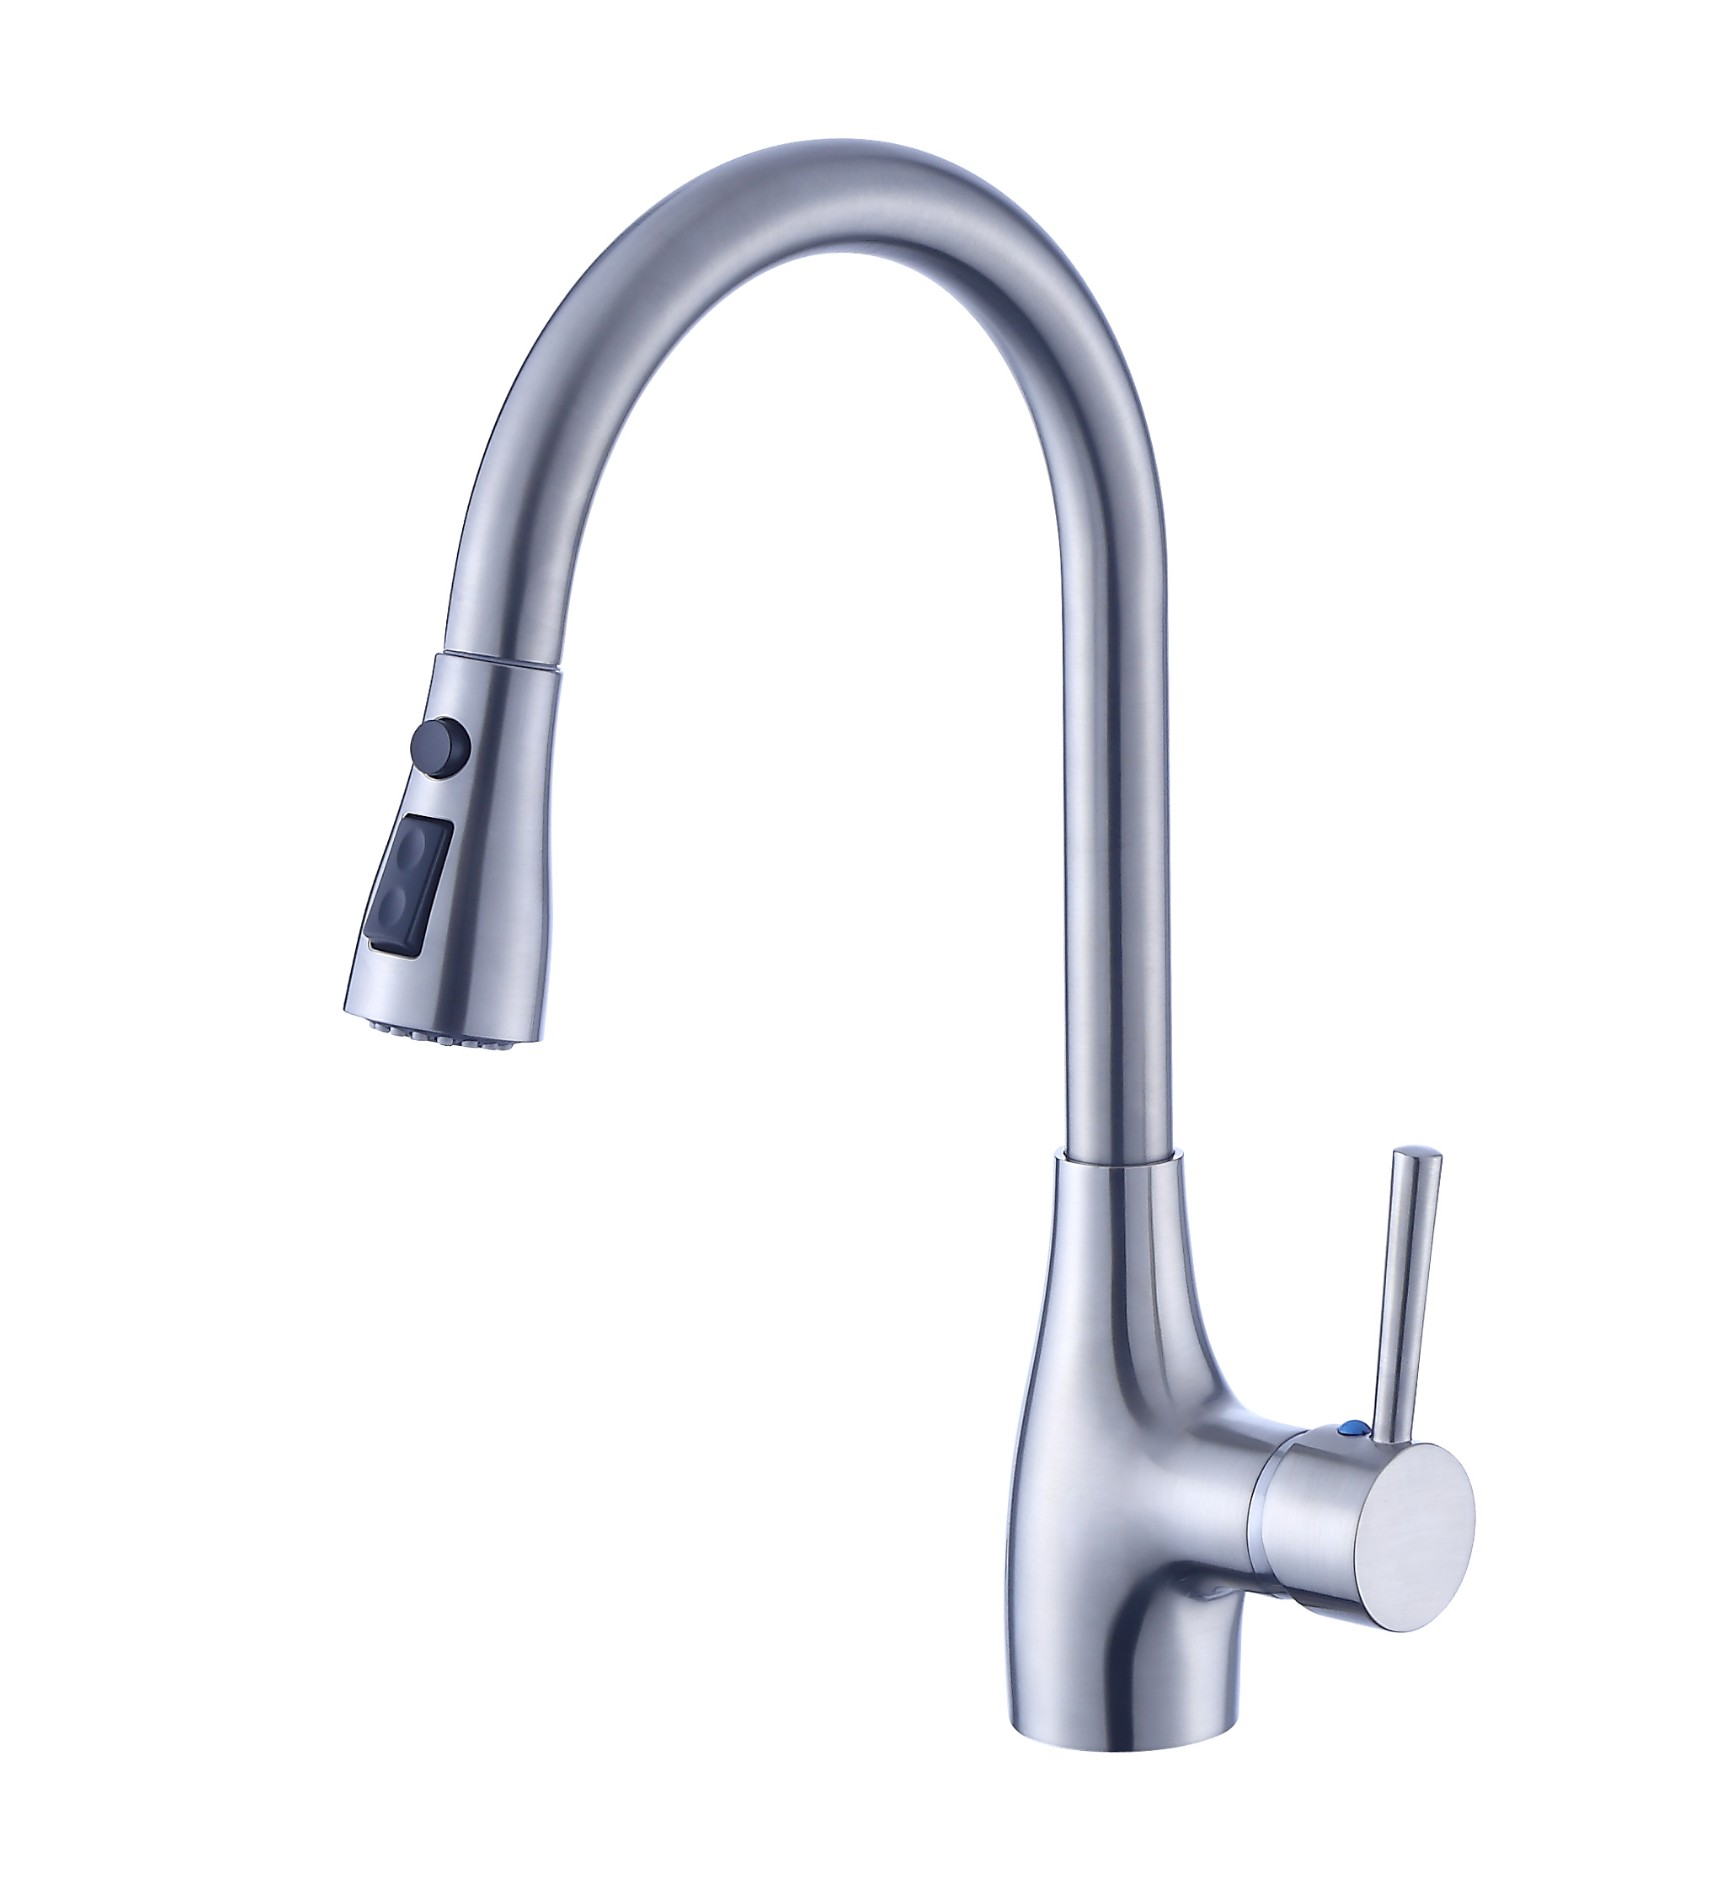 Single Handle Kitchen Sink Faucet With Pull Down Sprayer Manufacturers, Single Handle Kitchen Sink Faucet With Pull Down Sprayer Factory, Supply Single Handle Kitchen Sink Faucet With Pull Down Sprayer